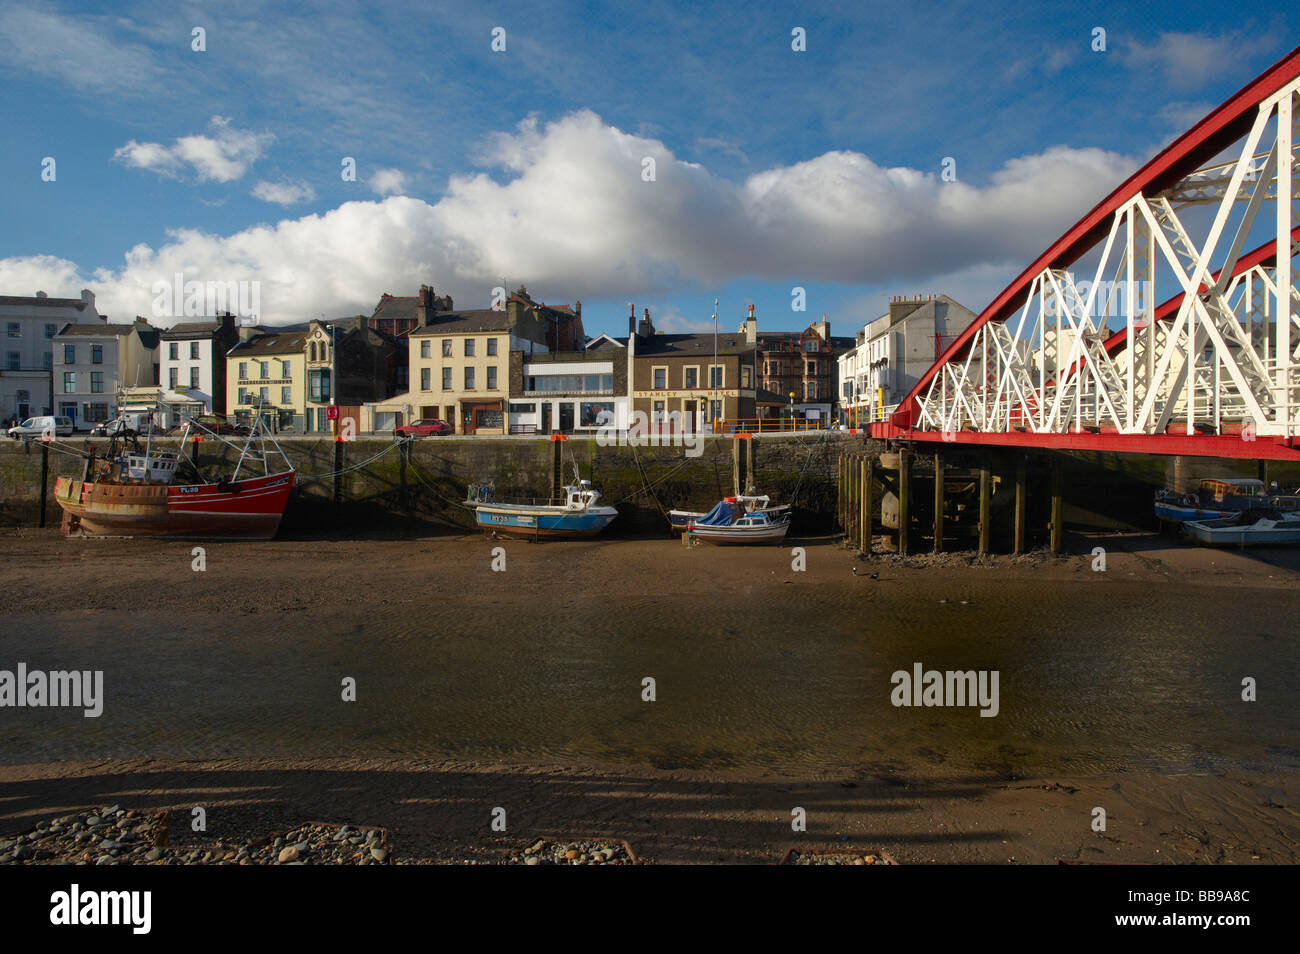 The Harbour and swingbridge at Ramsey in the Isle Of Man - Stock Image